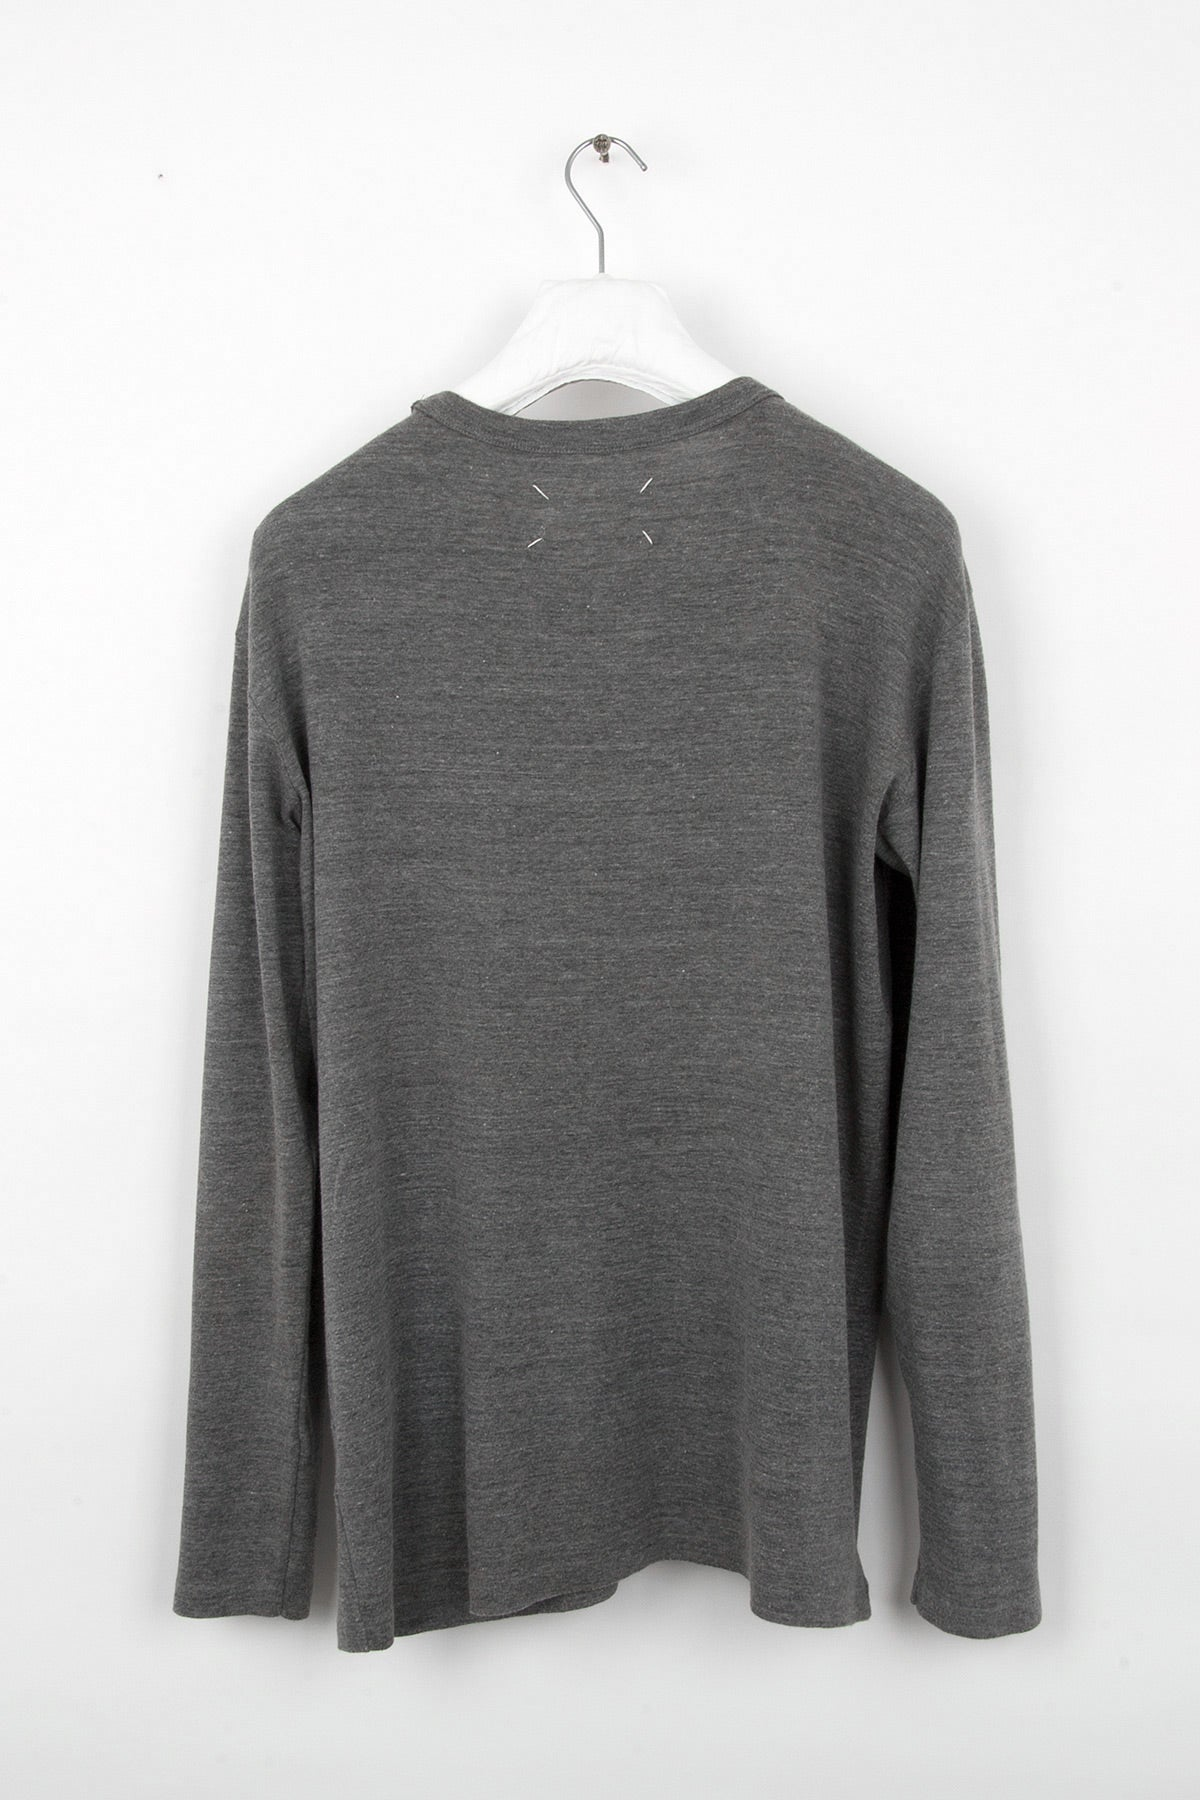 2000 A/W CREWNECK WITH FRONT SEAMING DETAIL IN WOOL AND COTTON BY MISS DEANNA